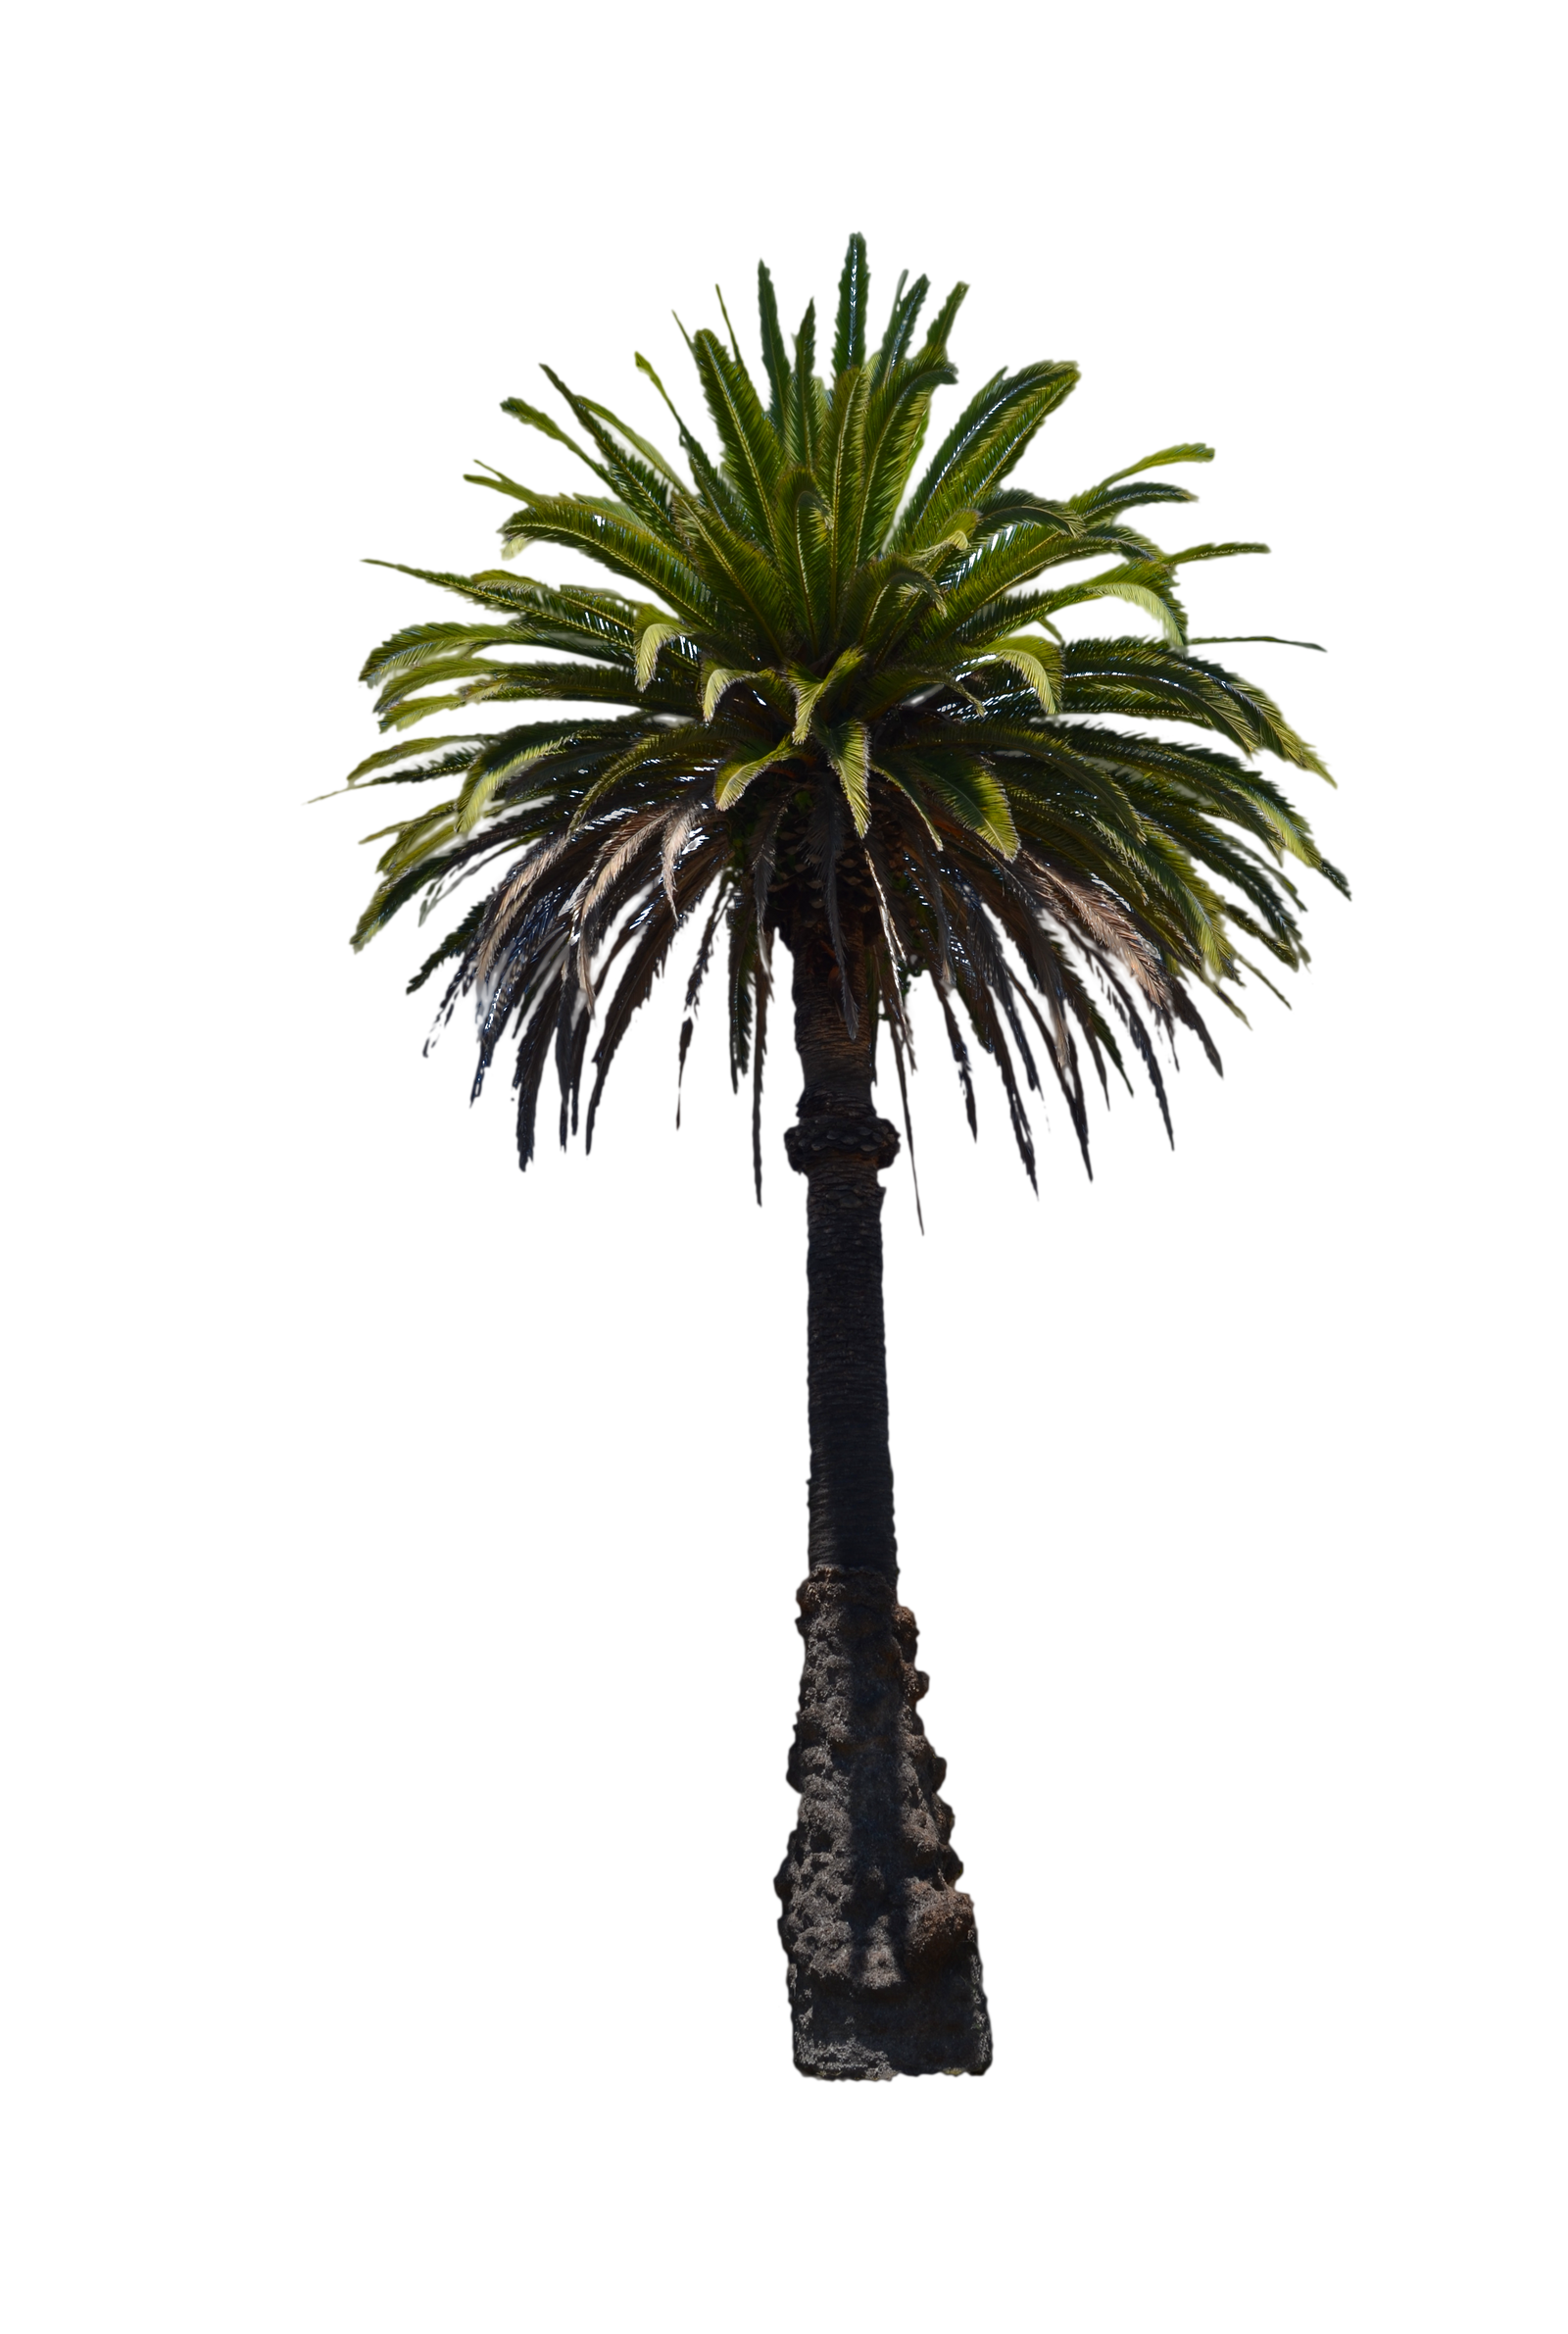 Palm Tree Stock Photo -PNG by annamae22 on DeviantArt